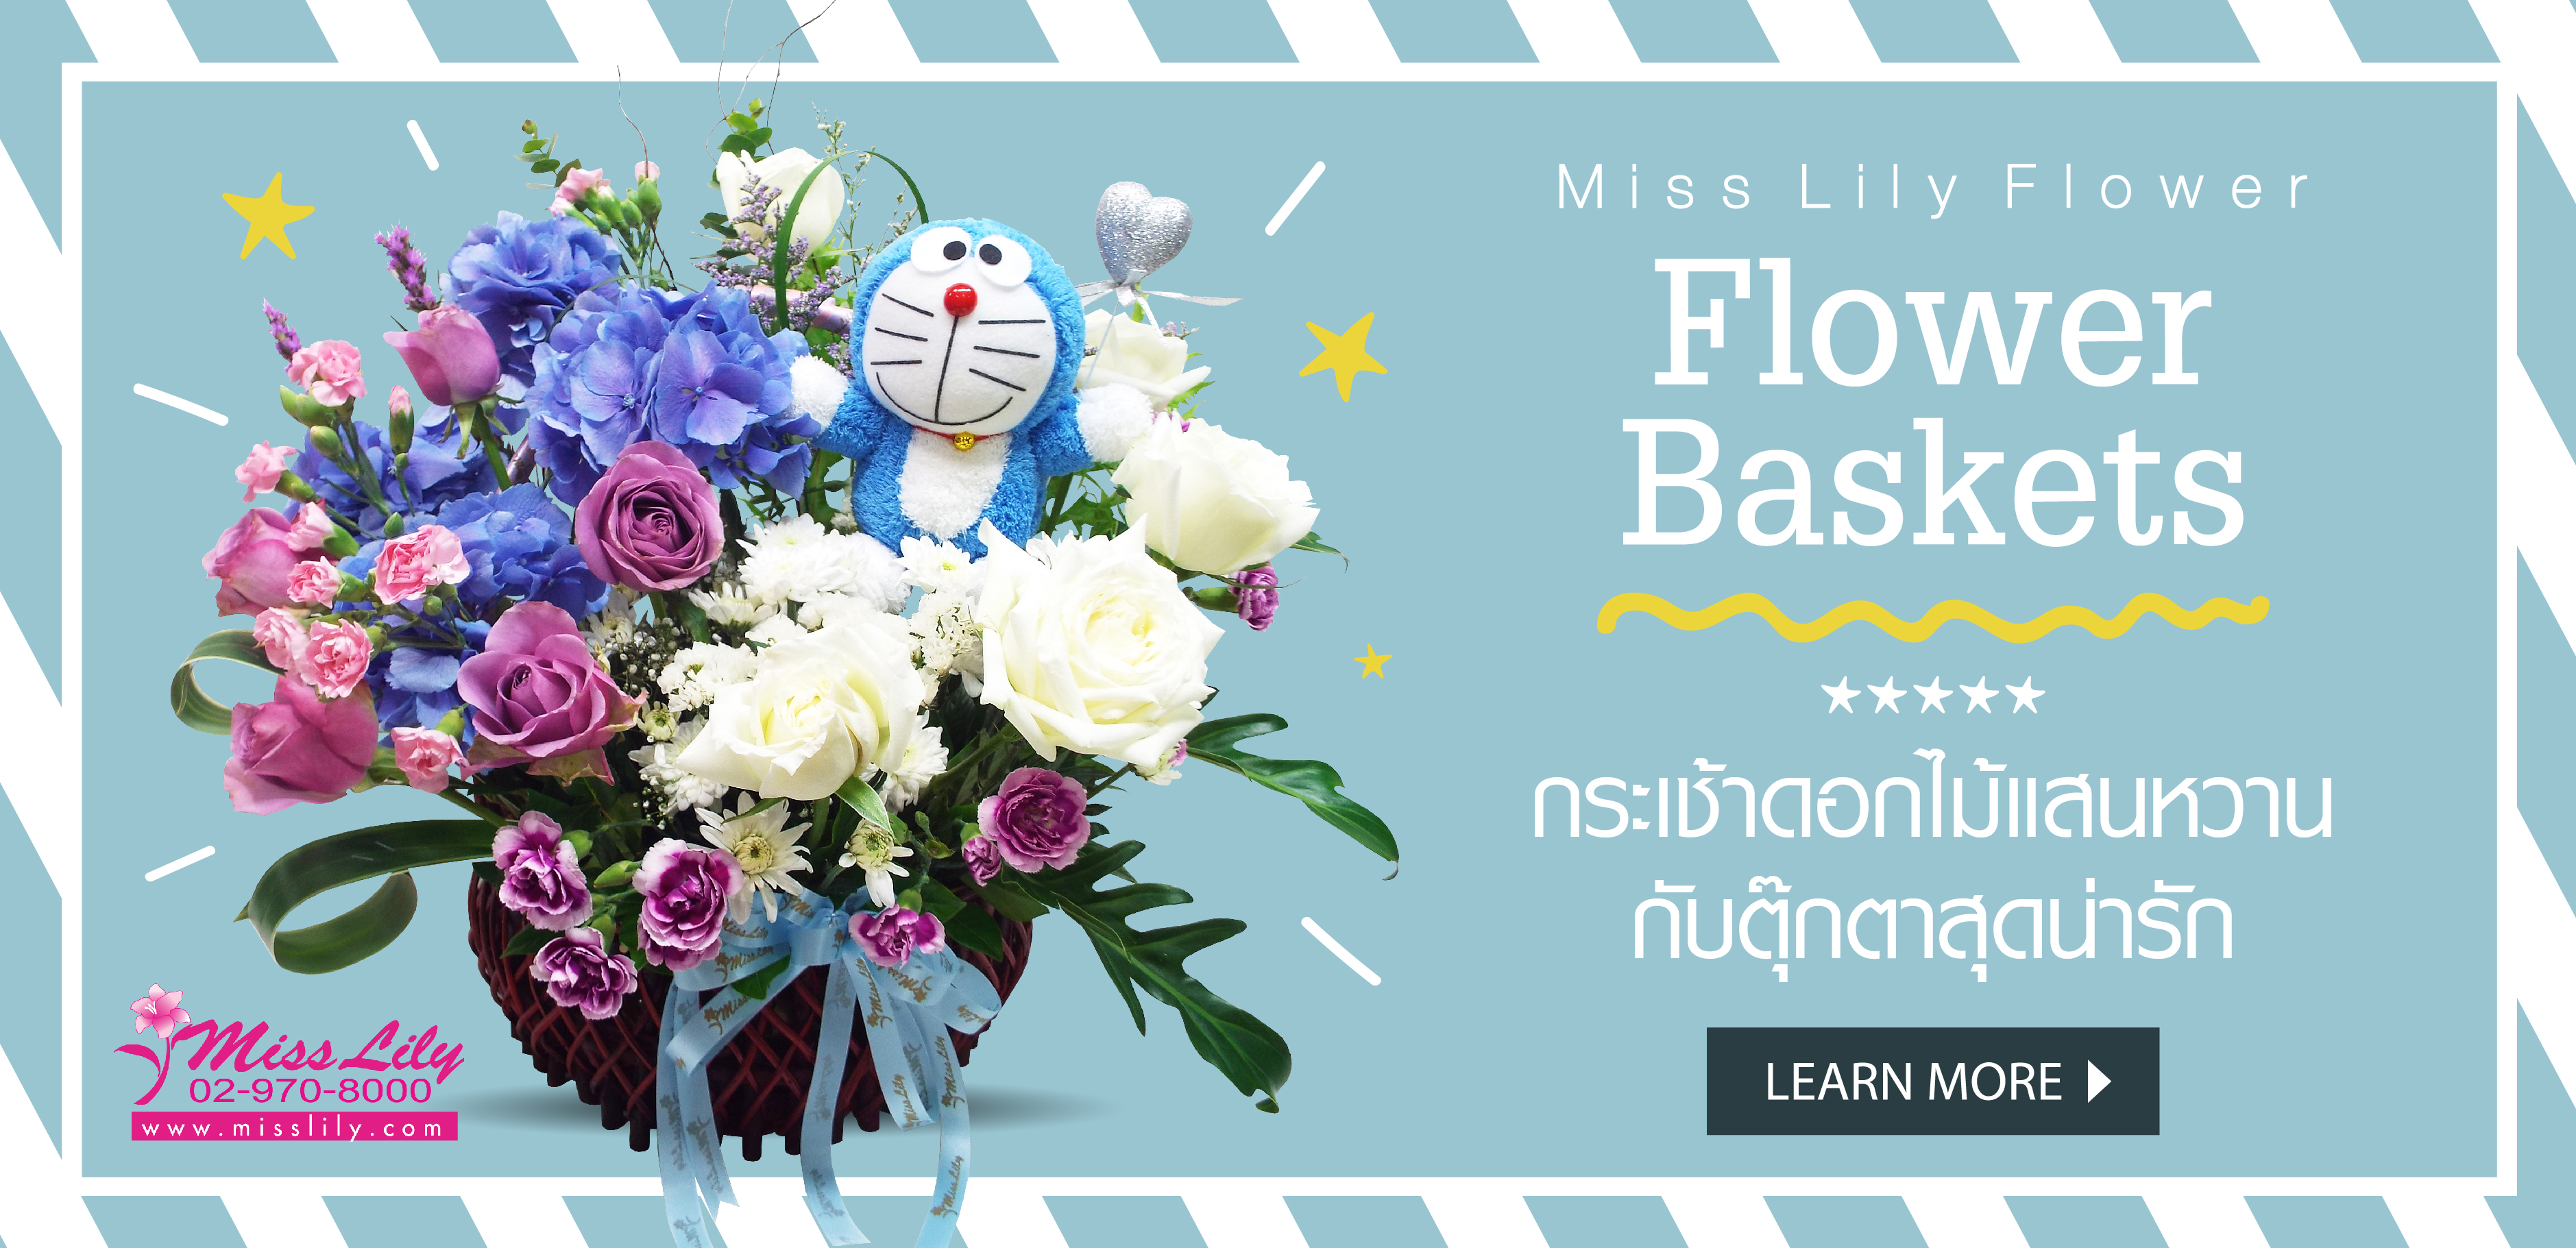 Flower baskets with lovely doll